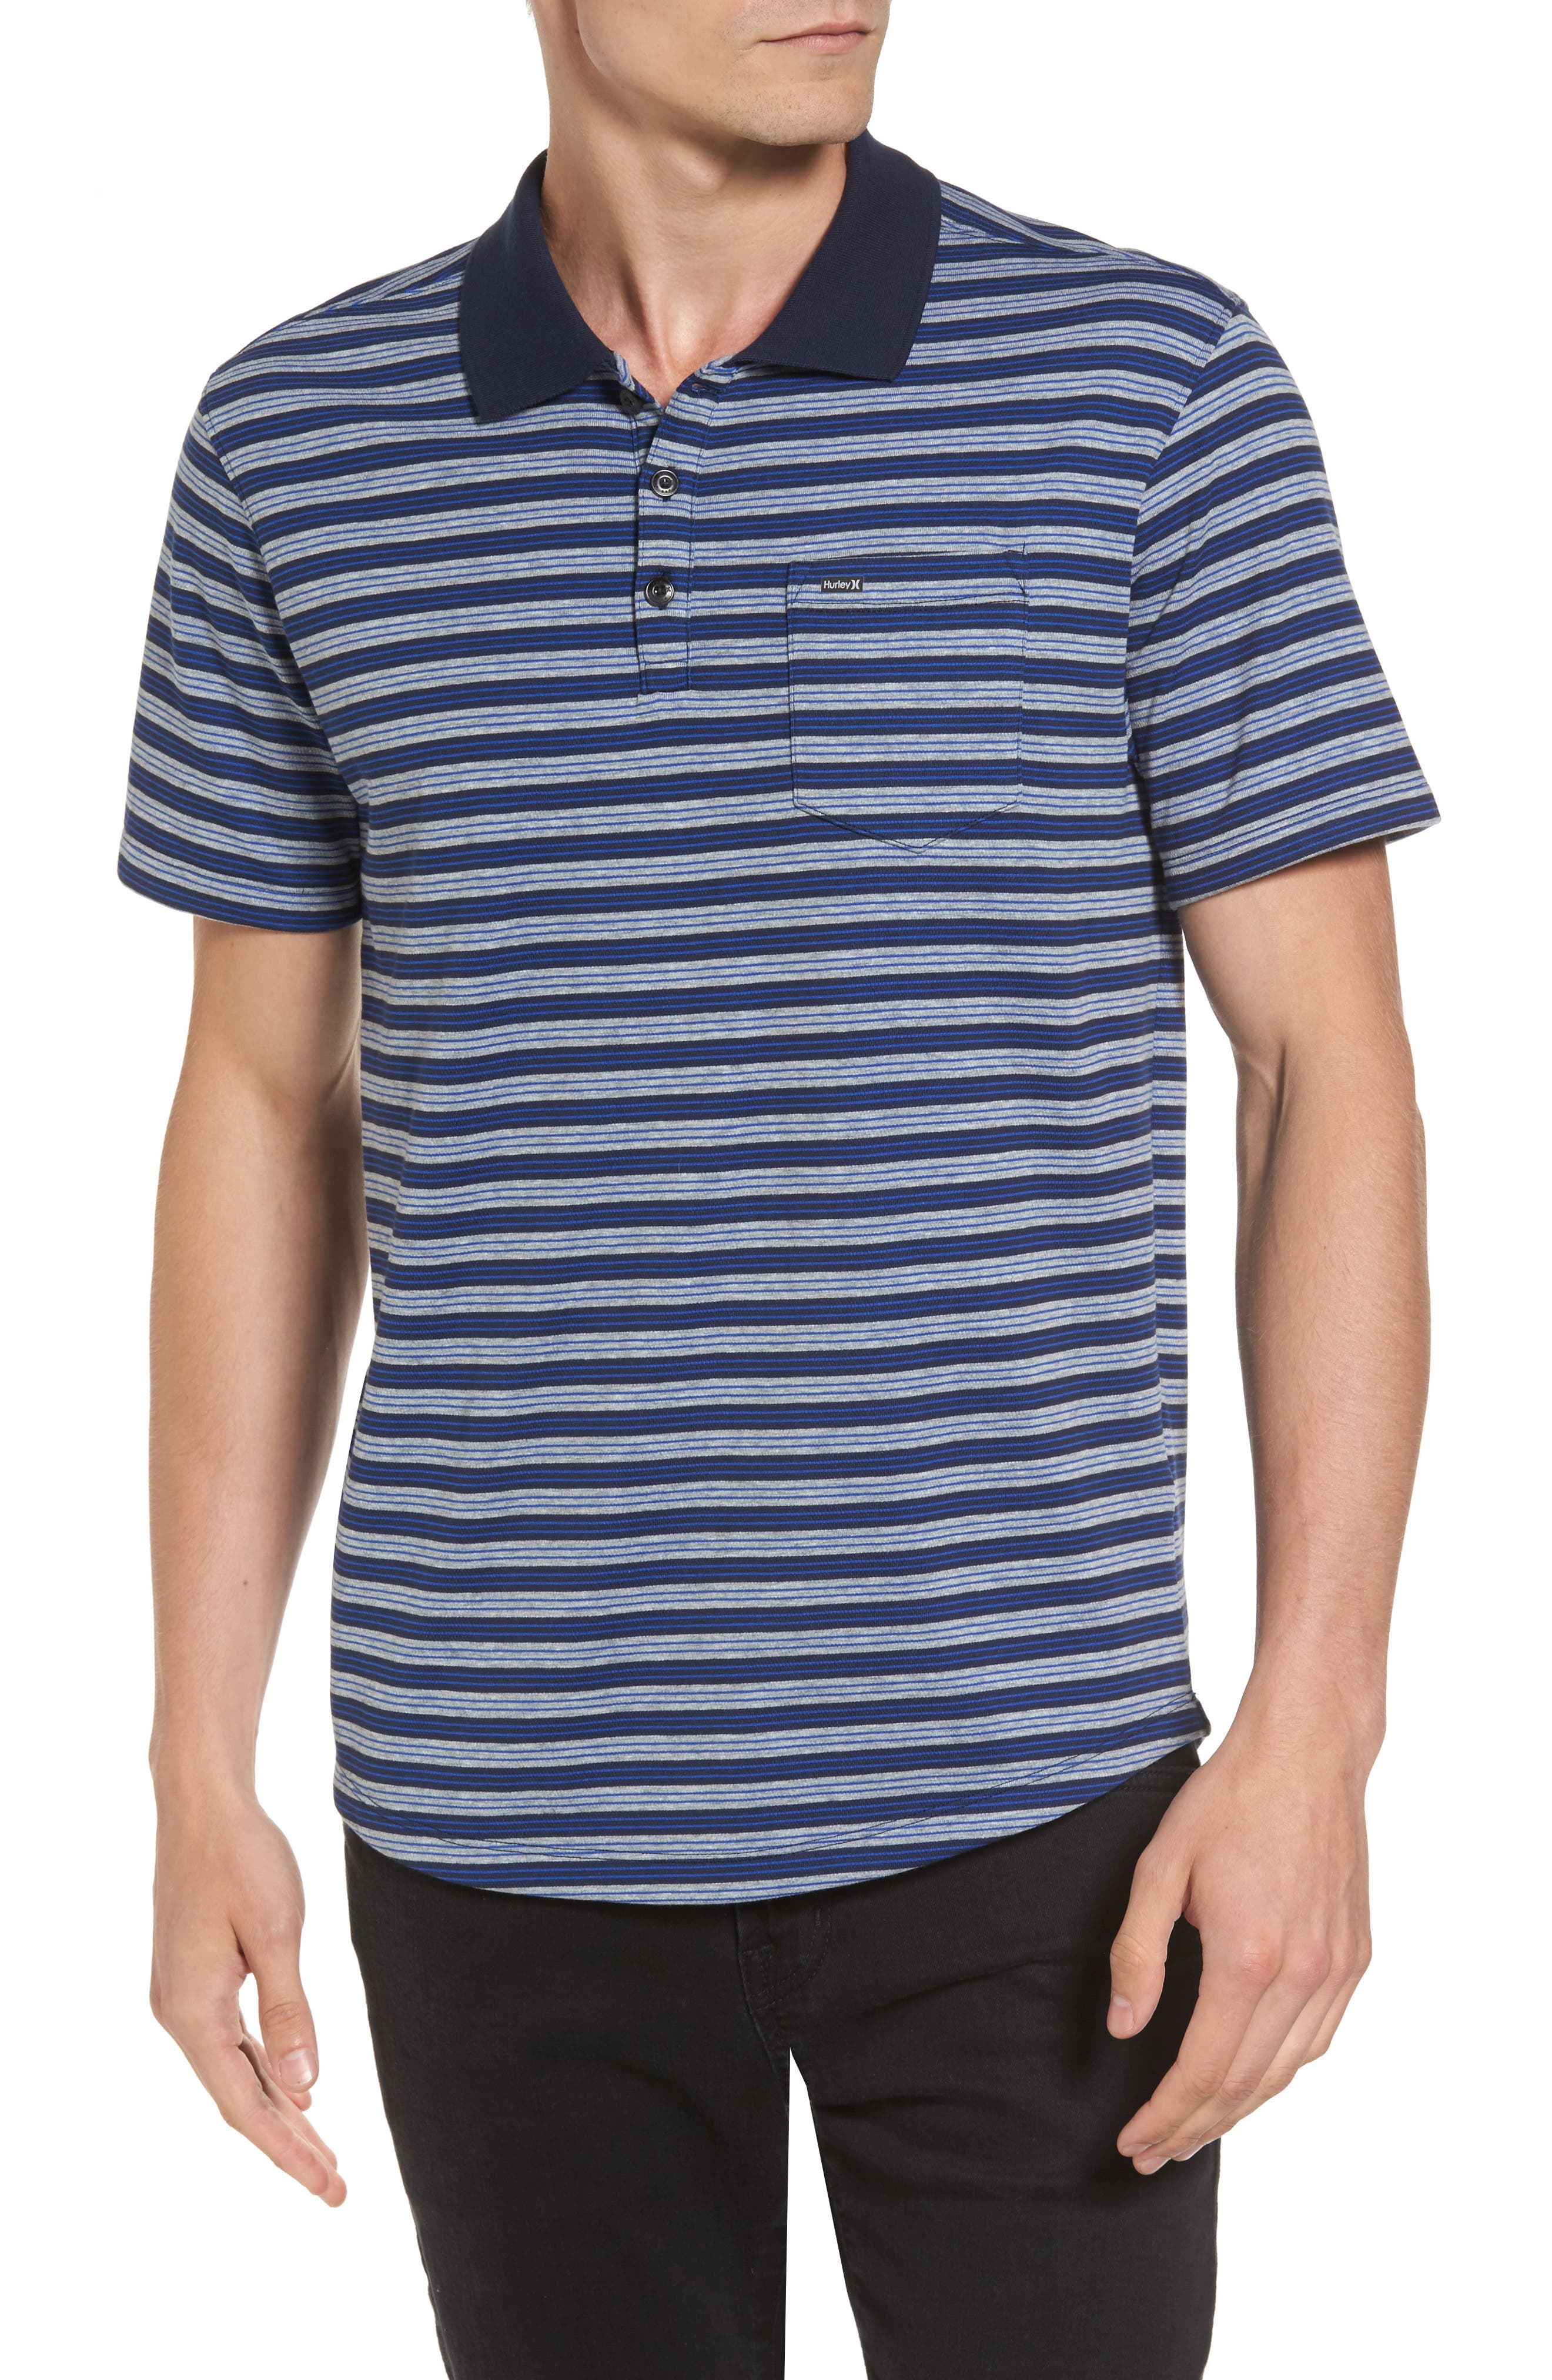 Hurley Tower 5 Dri-FIT Polo